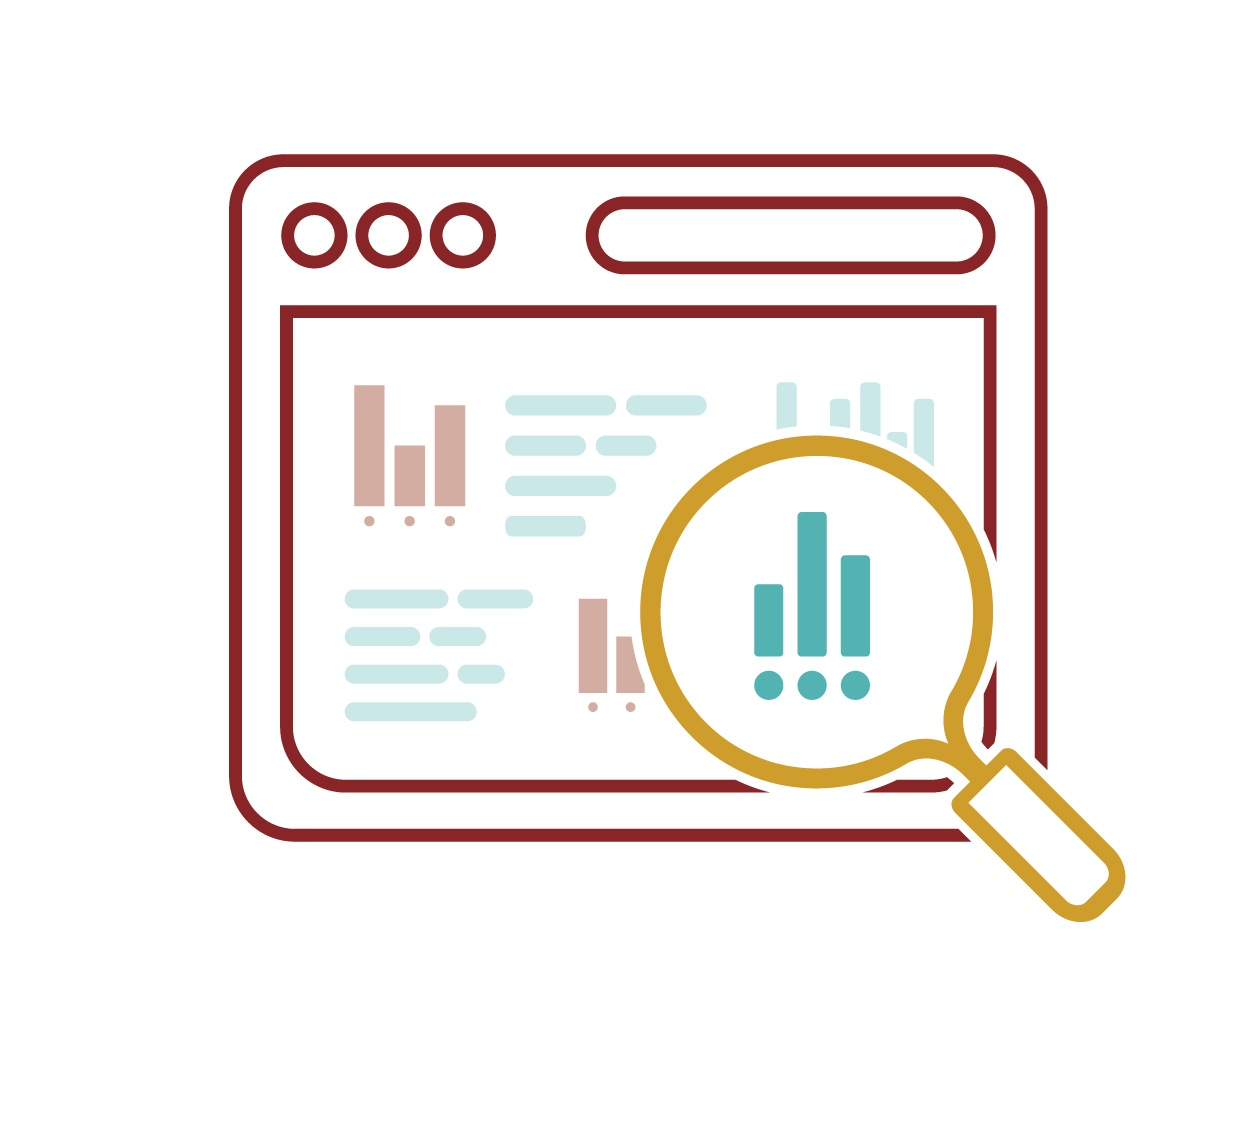 Go further than just email metrics. With proper set-up across your website + store, along with custom dashboards to put the most important metrics at your fingertips, we make sure you have quick and easy access to information you need to track your efforts and make data-informed, full-picture marketing decisions. -